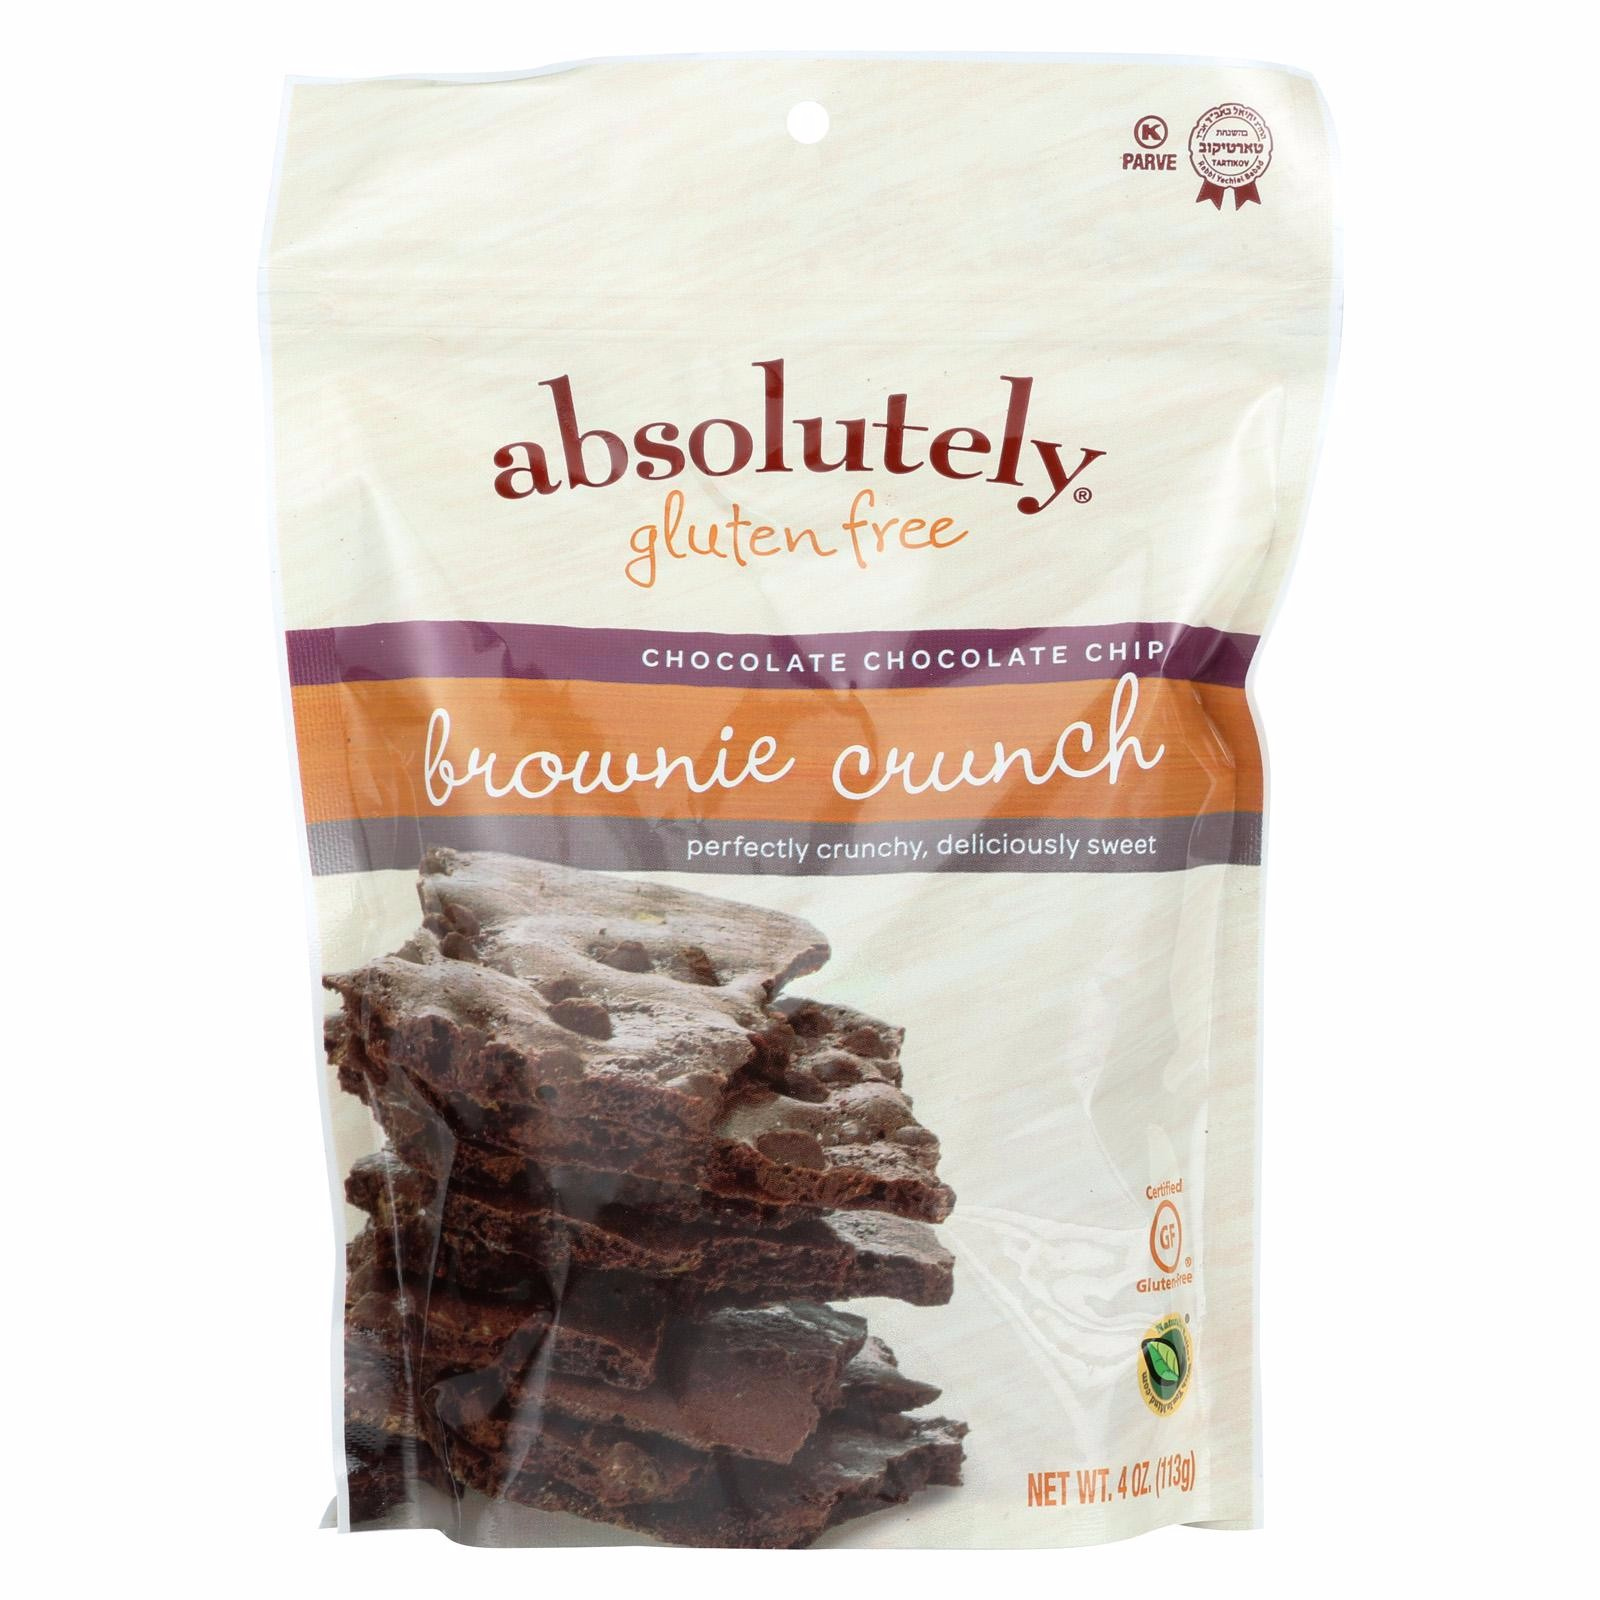 Absolutely Gluten Free Brownie Crunch - Chocolate Chip - Pack of 6 - 4 Oz.